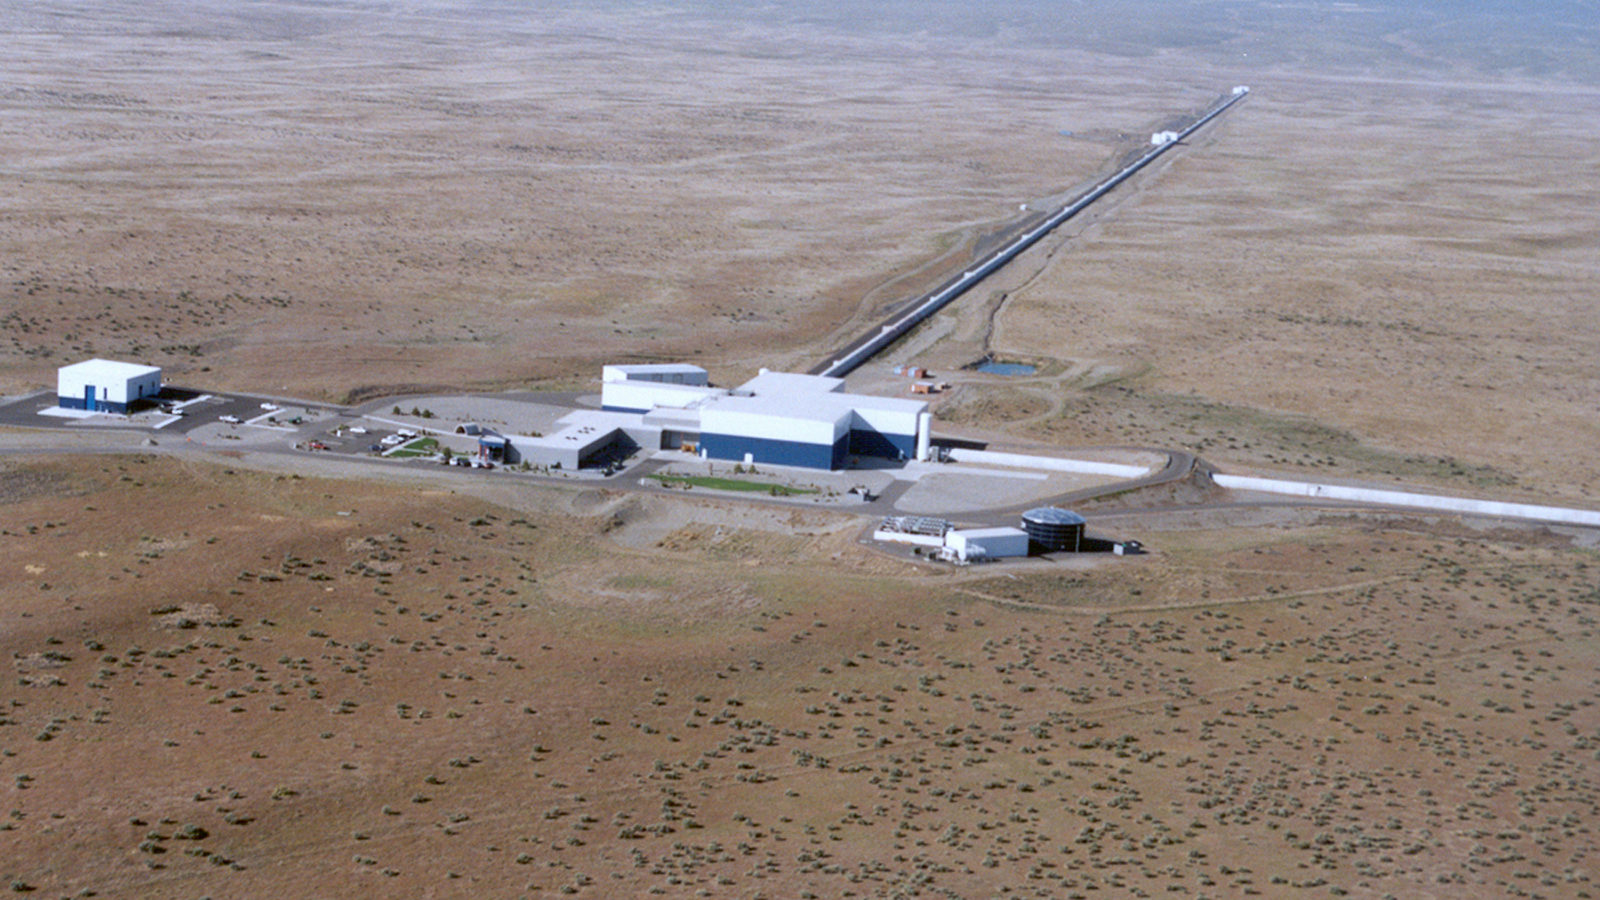 The Laser Interferometer Gravitational-wave Observatory in Hanford, Washington. Credit: Caltech/MIT/LIGO Lab